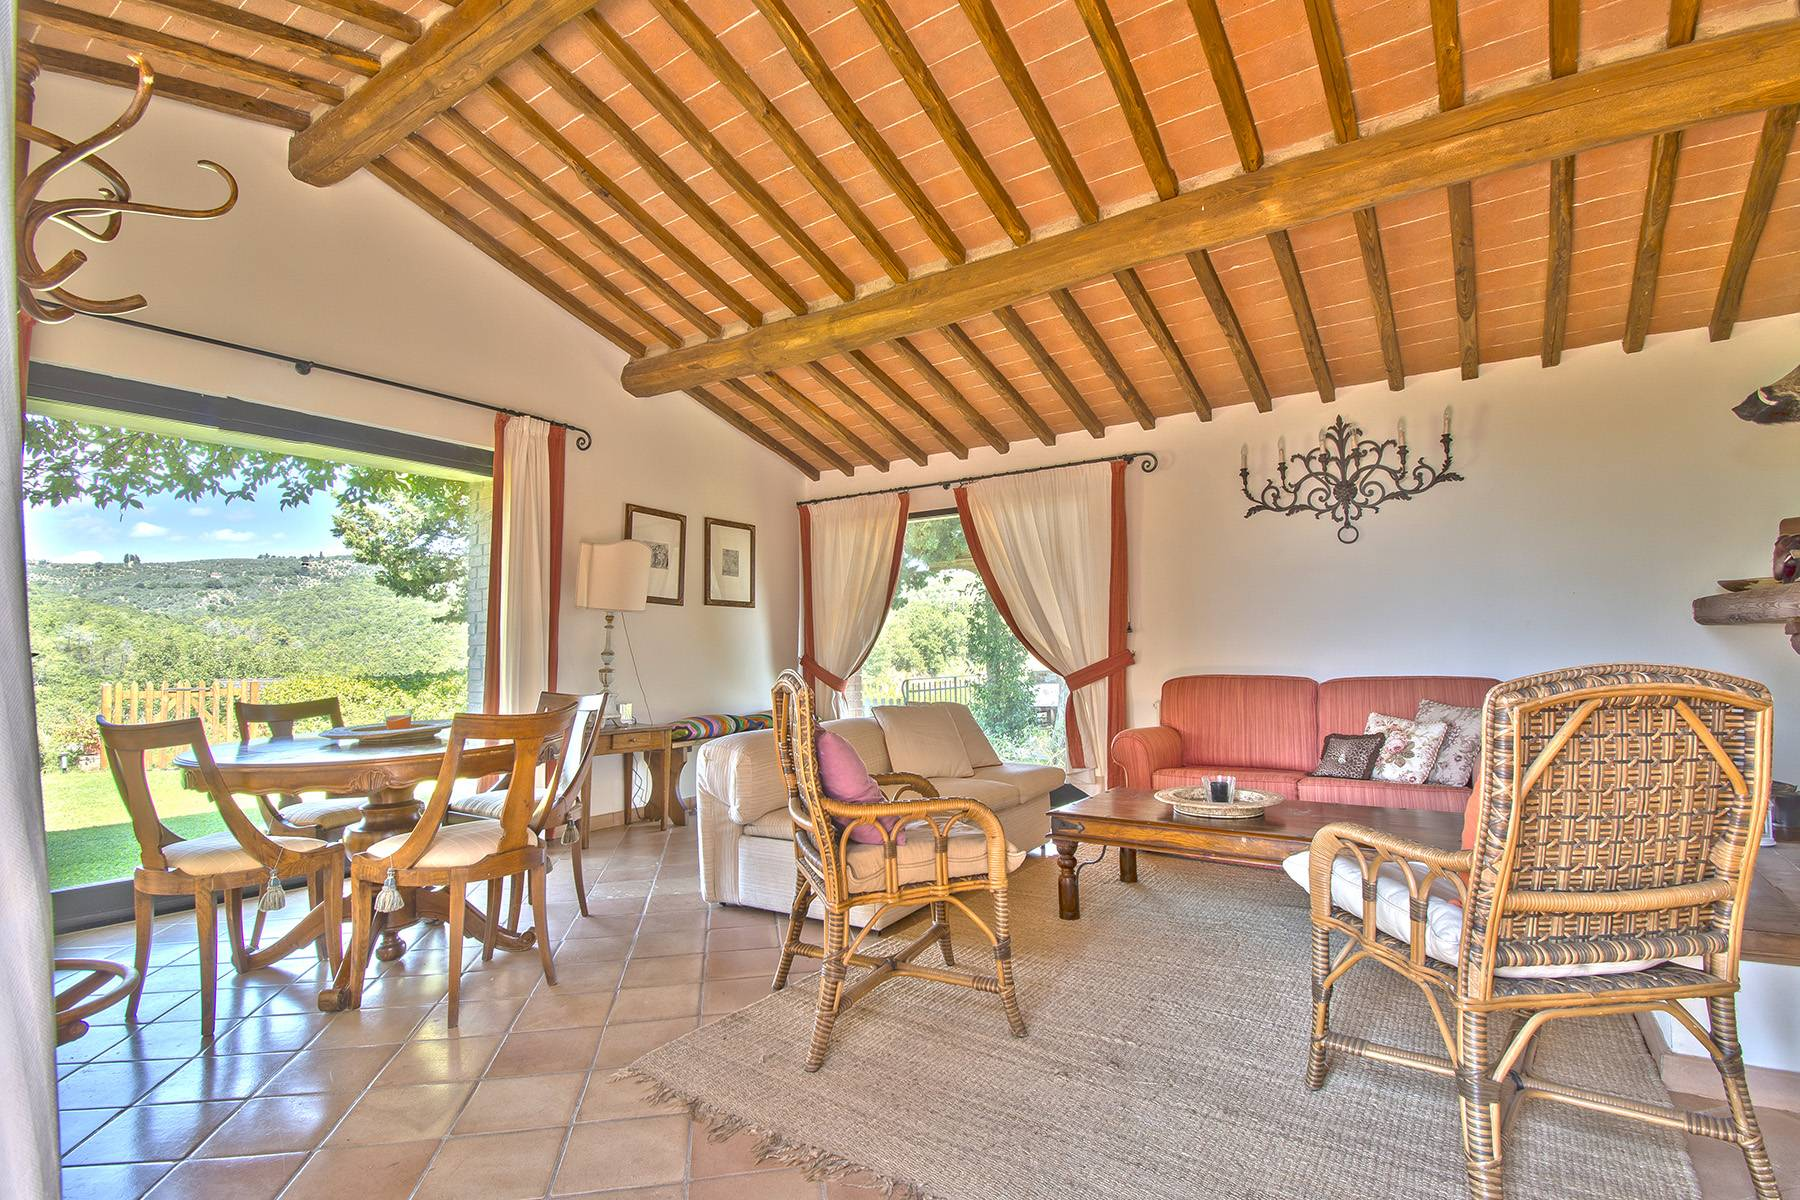 Rustic House in the Tuscan Hills for Sale - 12